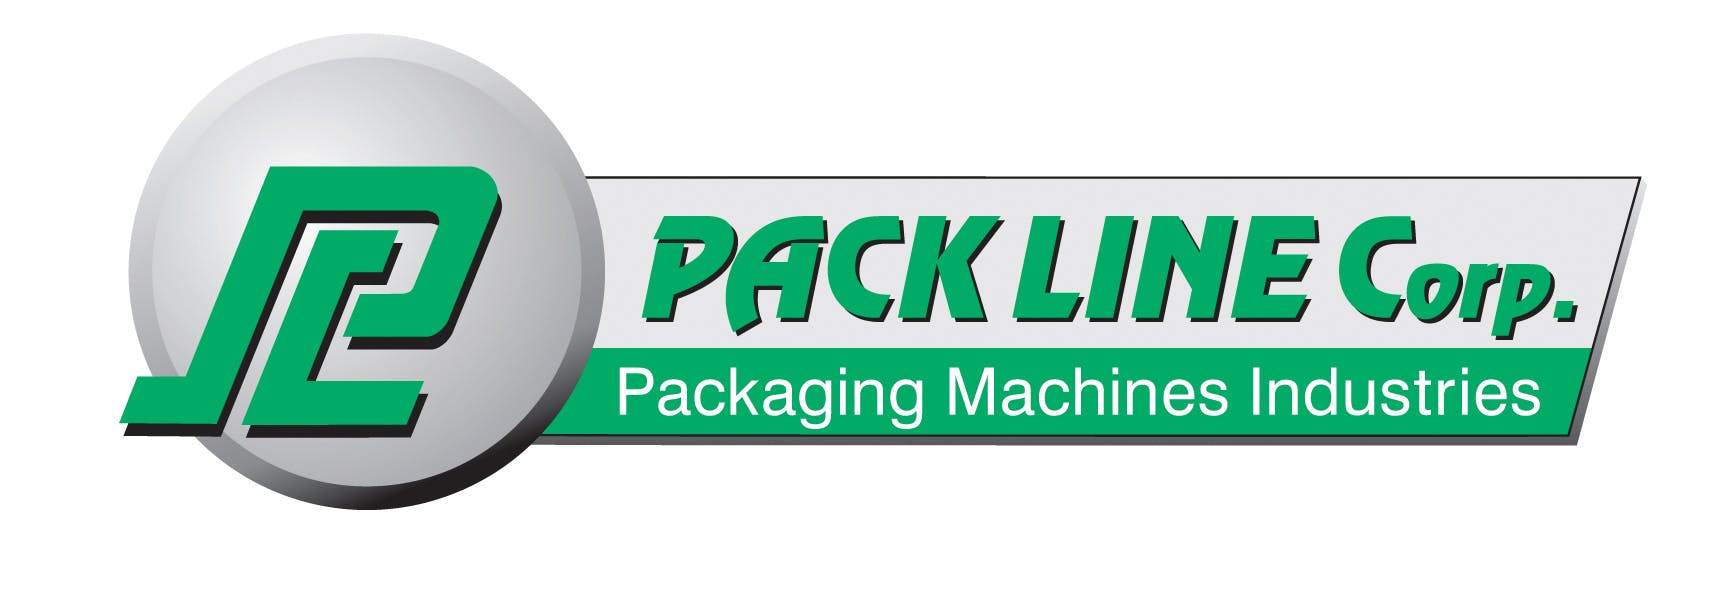 Pack Line Corp.